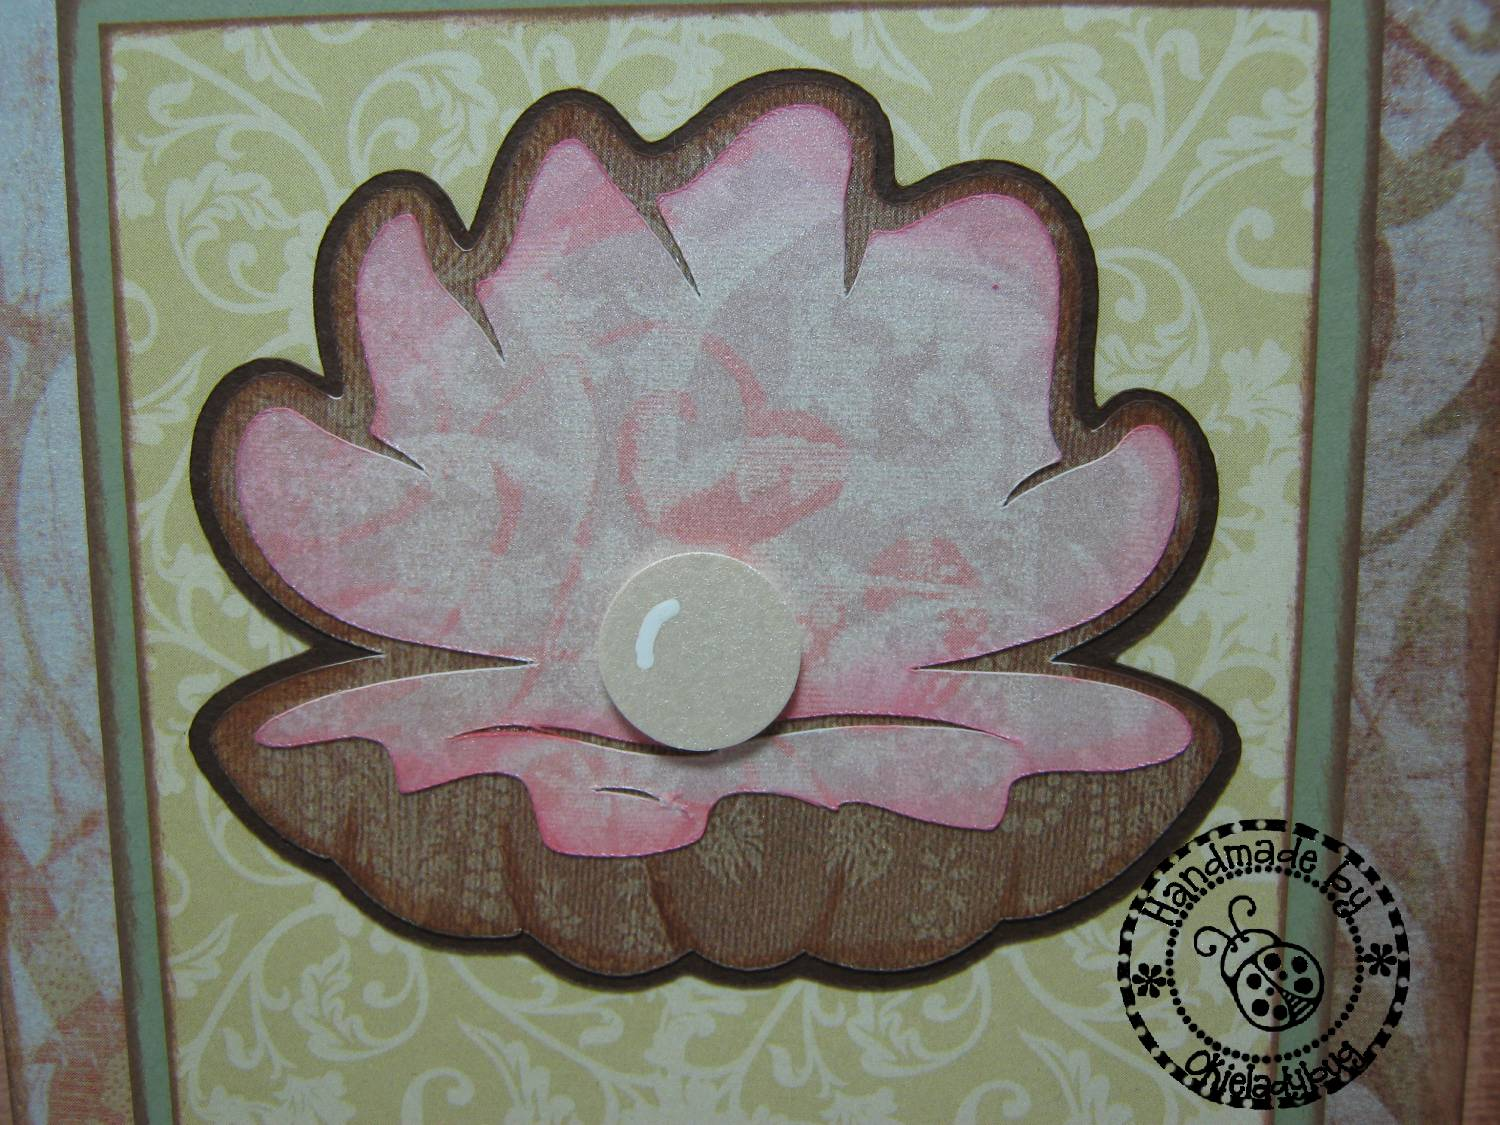 Cricut Sea Shell http://www.okieladybug.com/2011/11/sympathy-card-seashell-theme.html